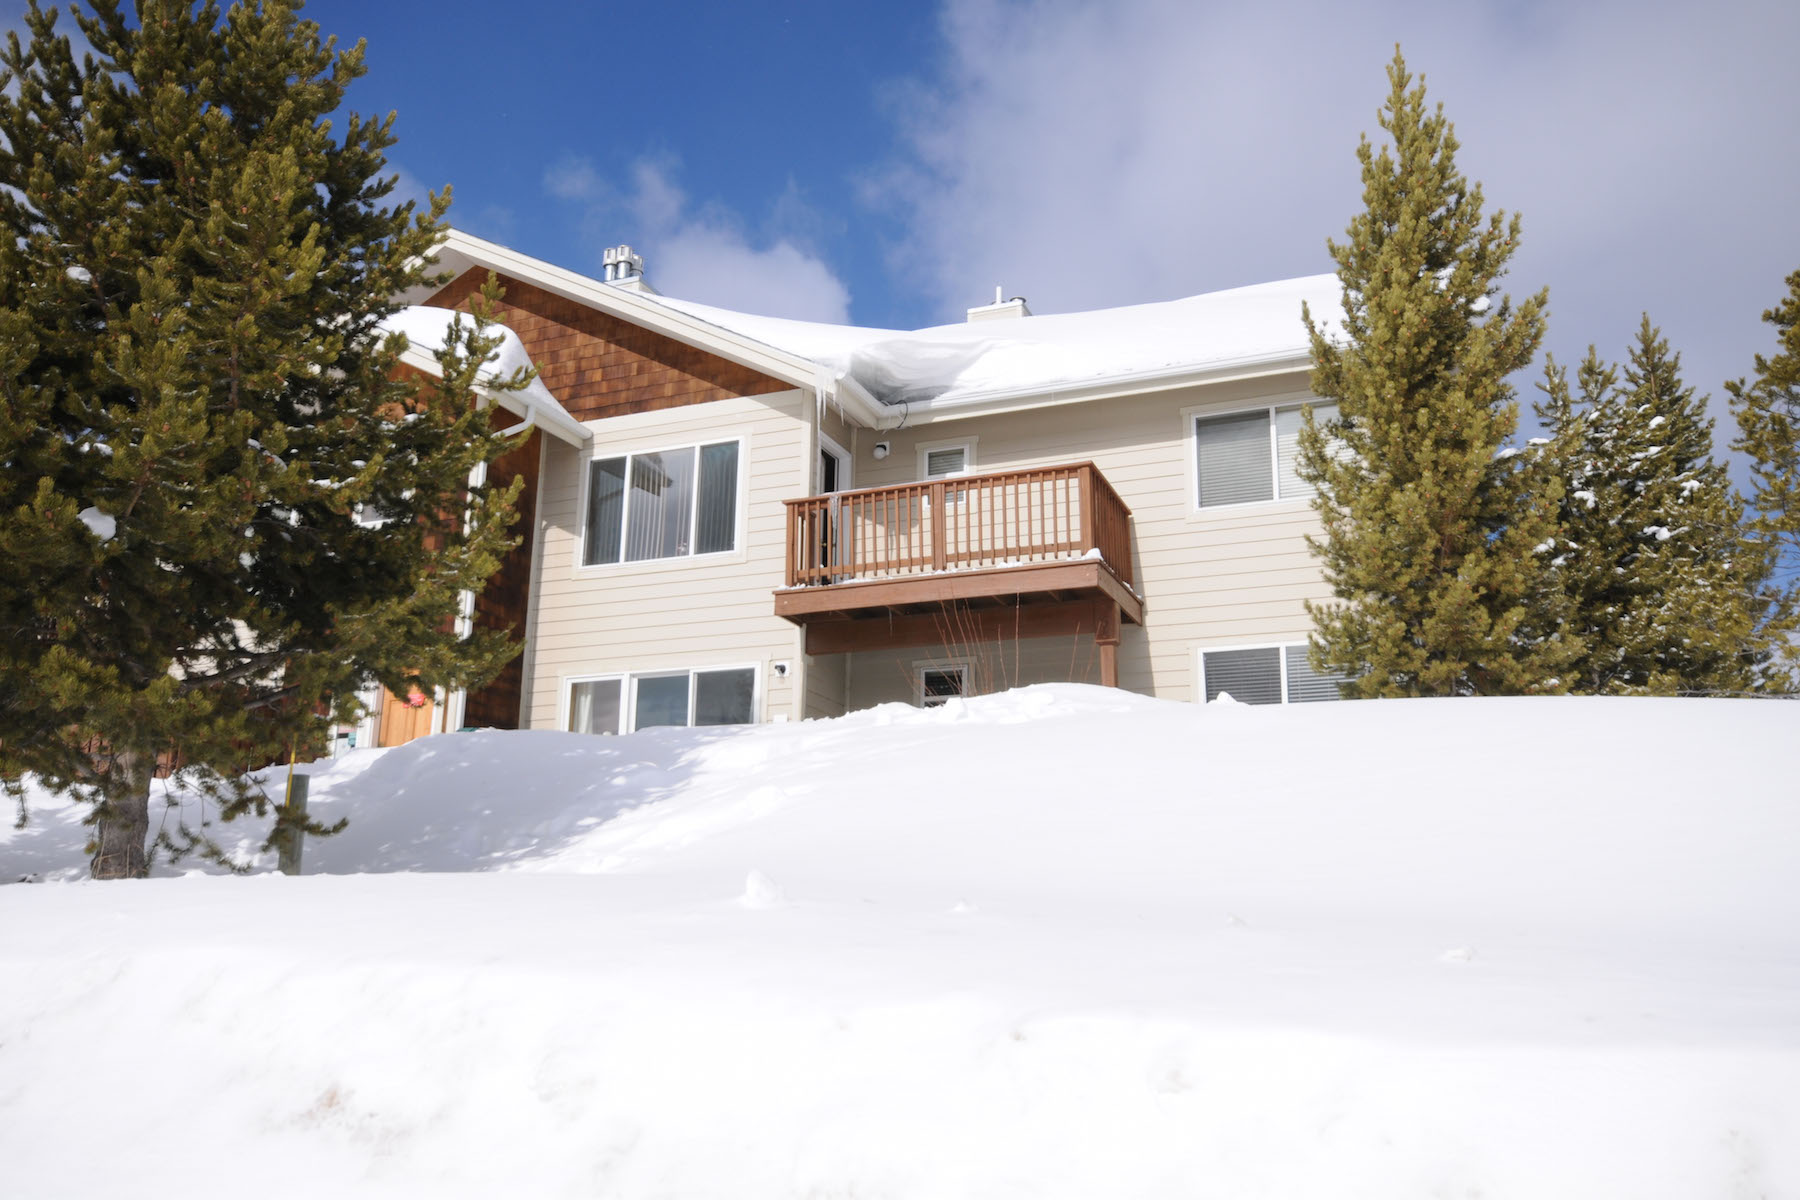 Condominium for Sale at Ski Condo Cedar Creek 46 13 Moose Ridge Road Unit 46 Big Sky, Montana 59716 United States